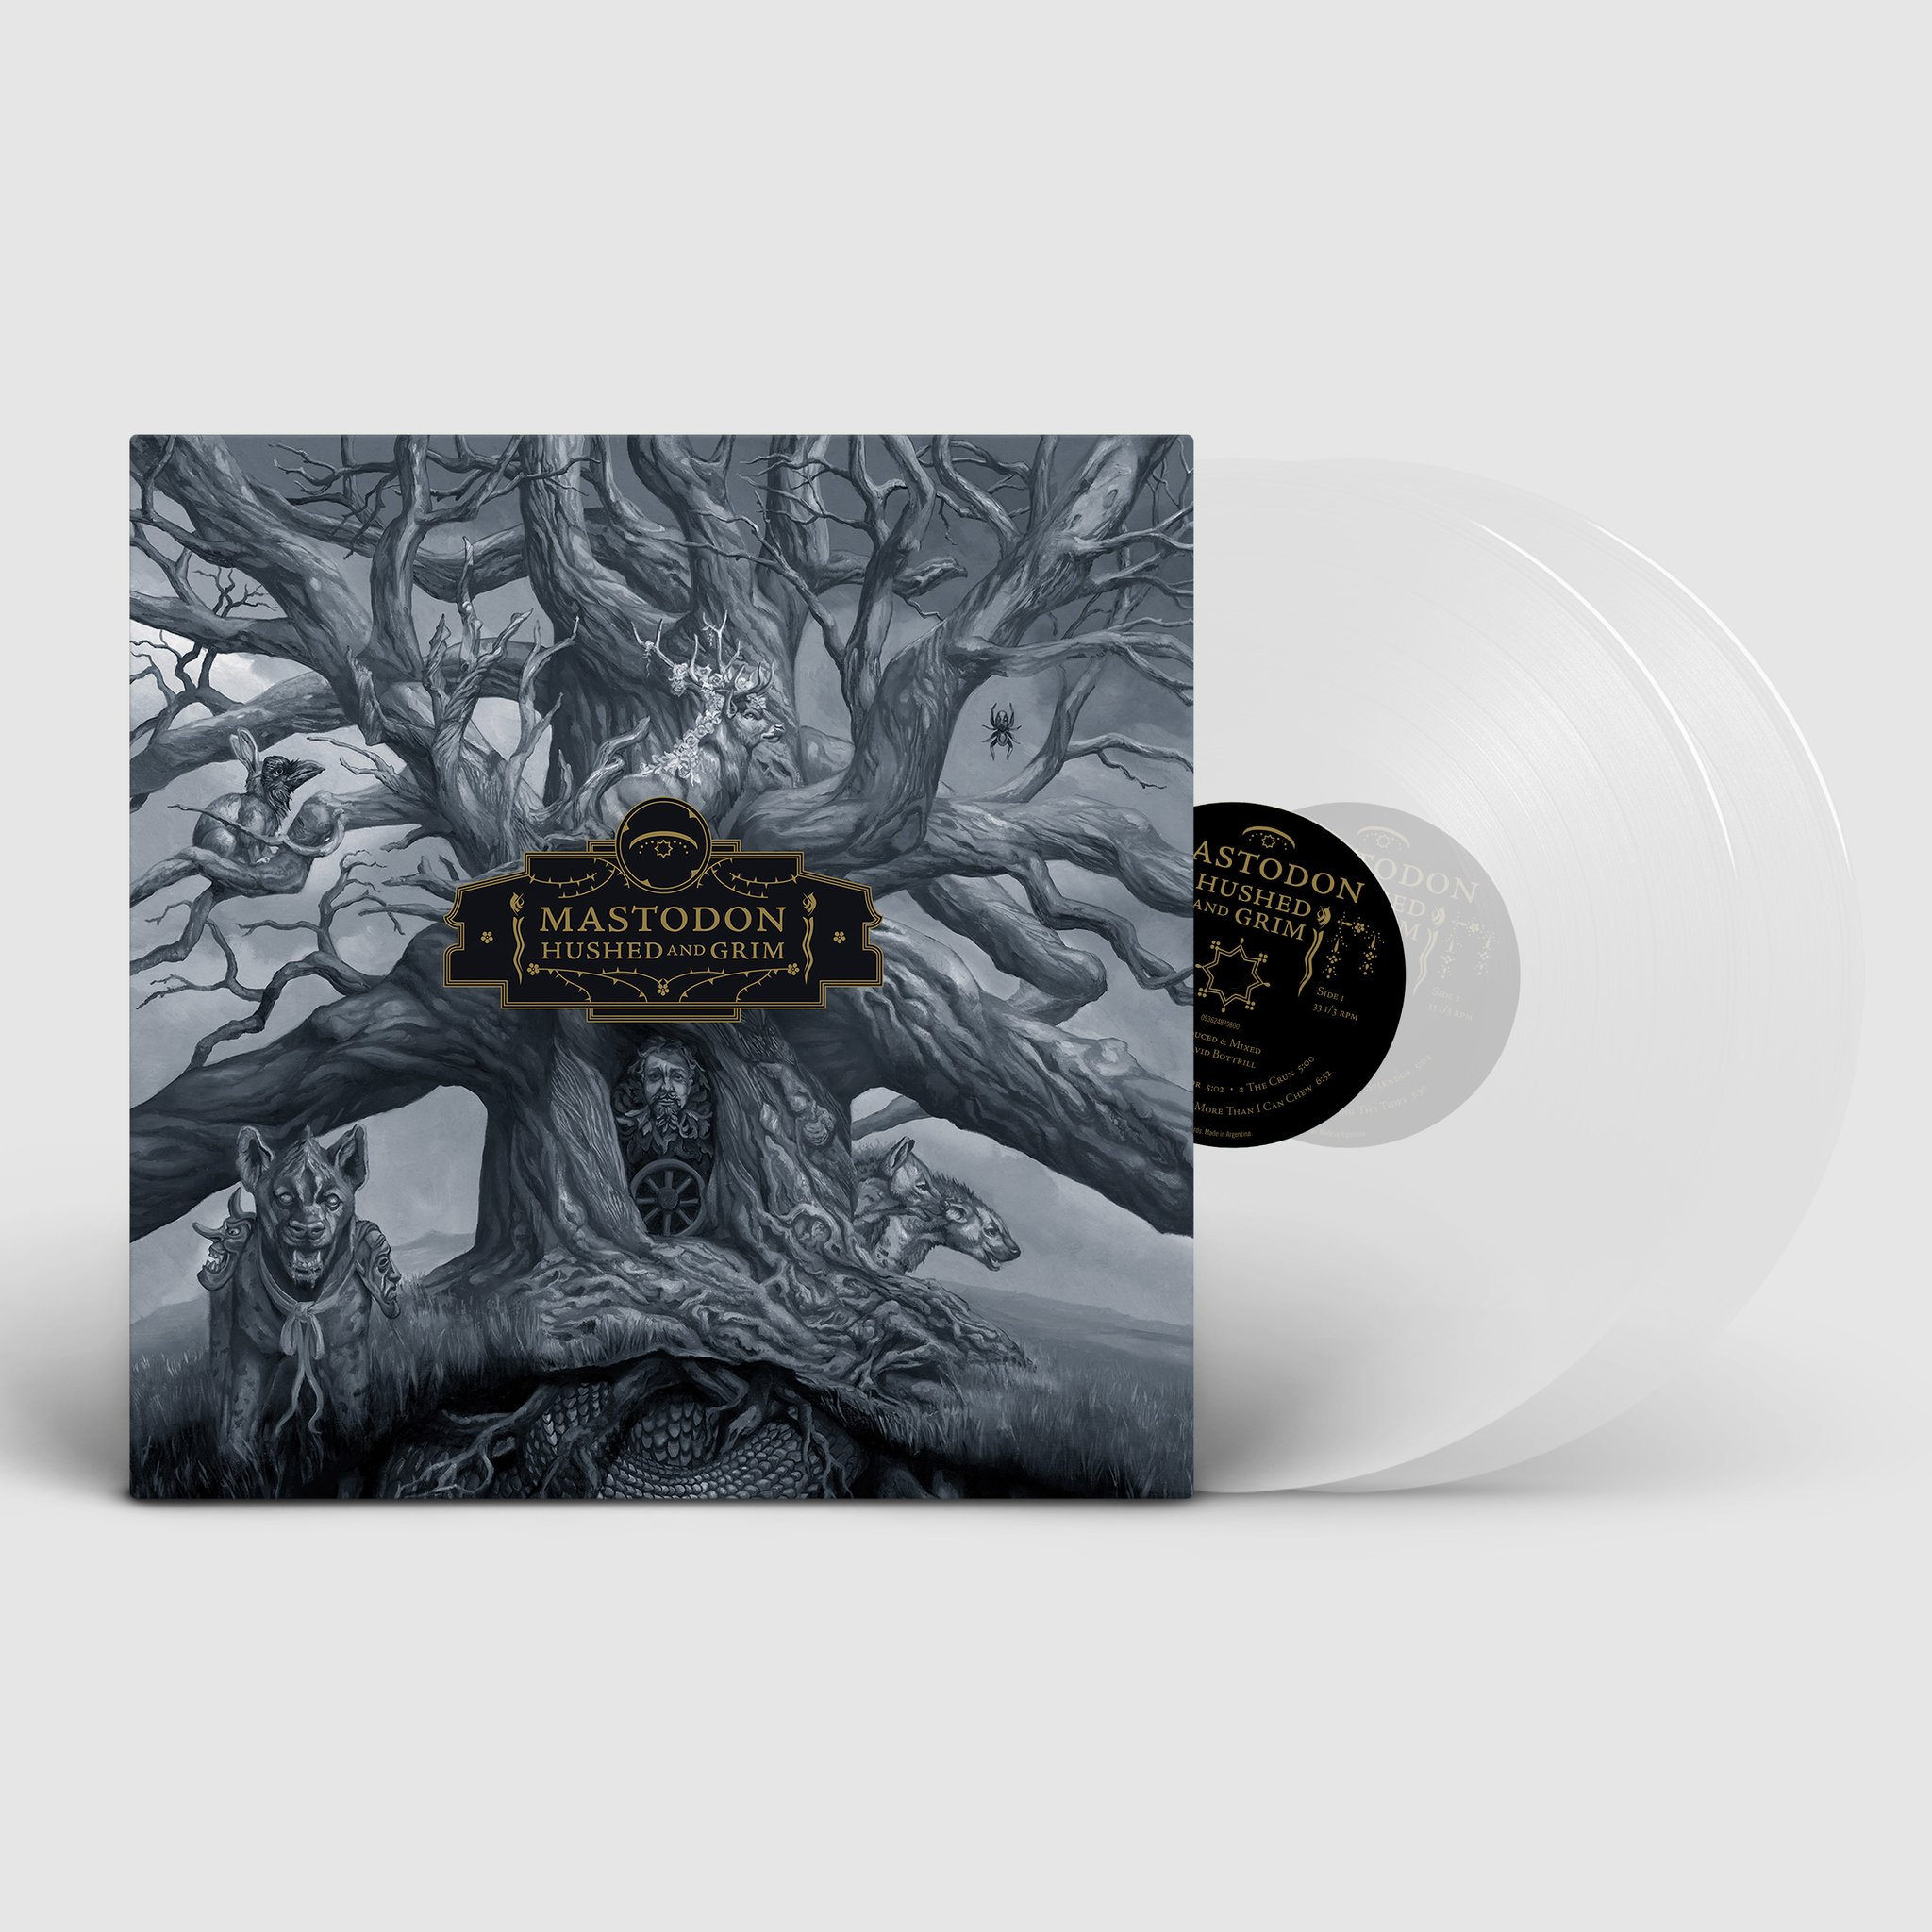 Mastodon - Hushed and Grim Limited Edition RSD Stores 2LP Clear Vinyl